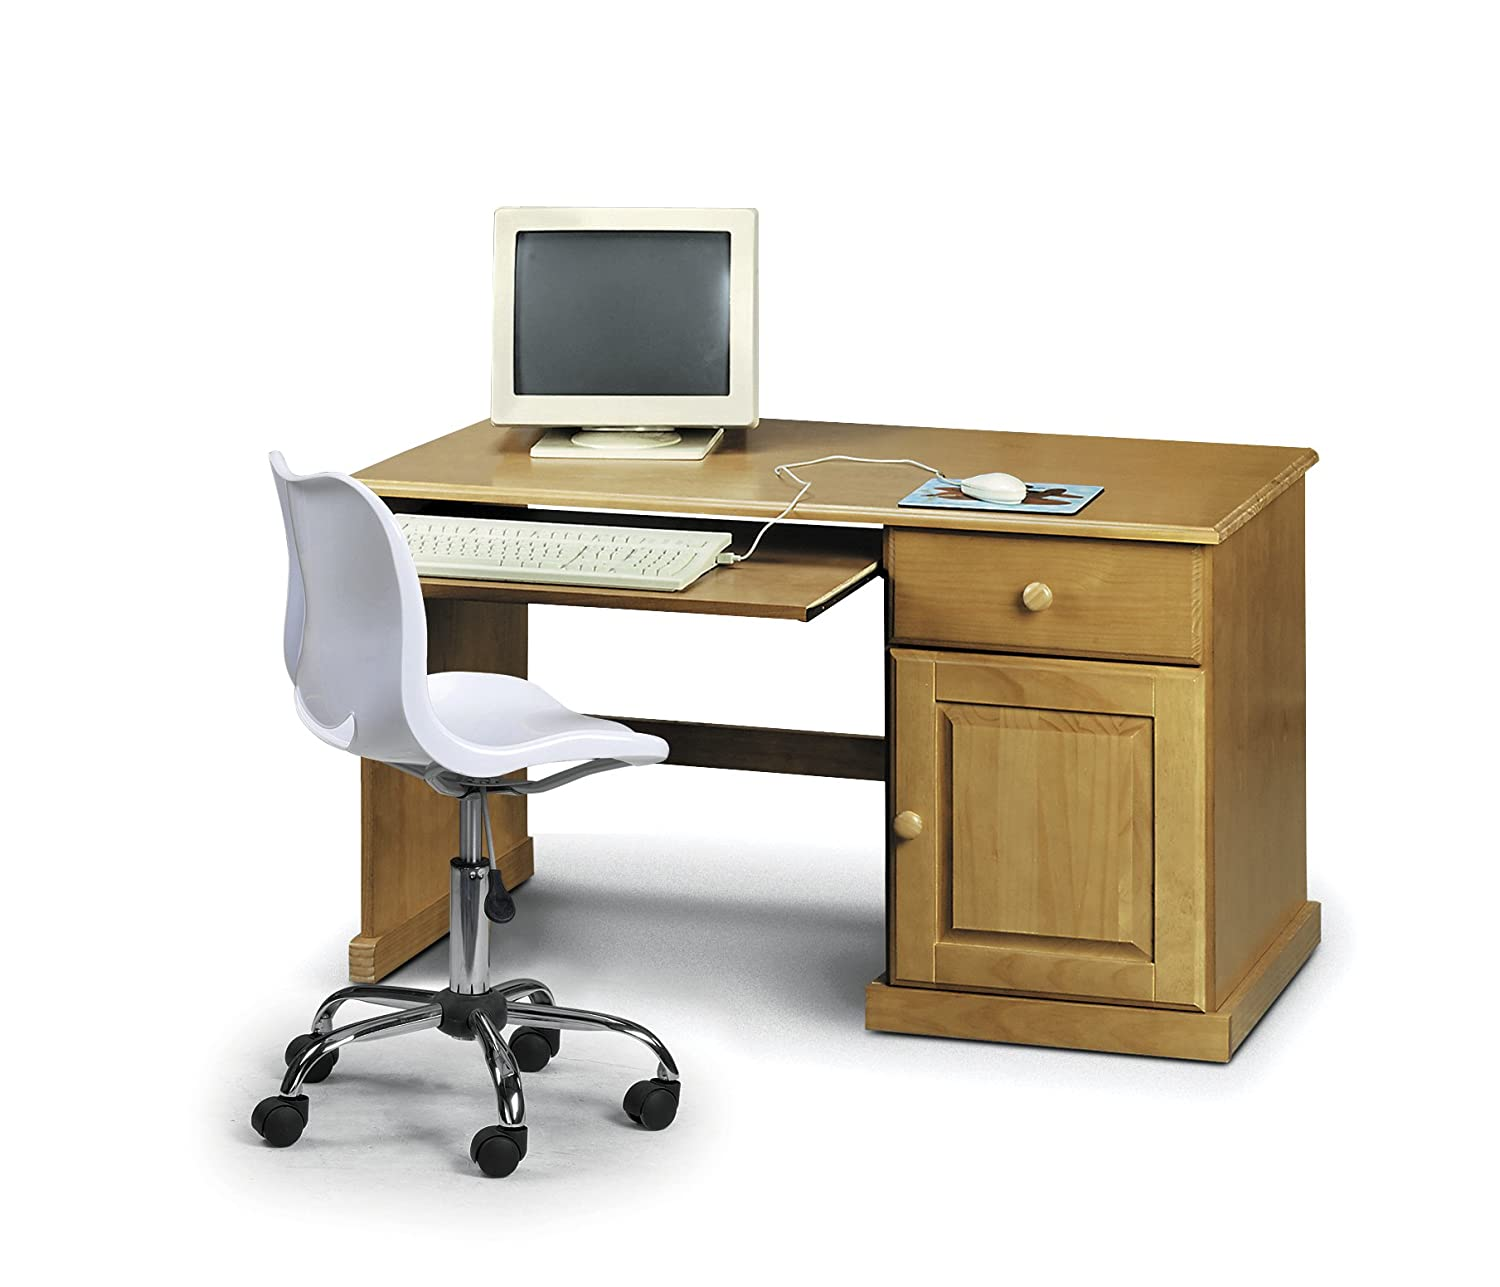 d display fortytwo item cor furniture revetir study white computer gallery desk home